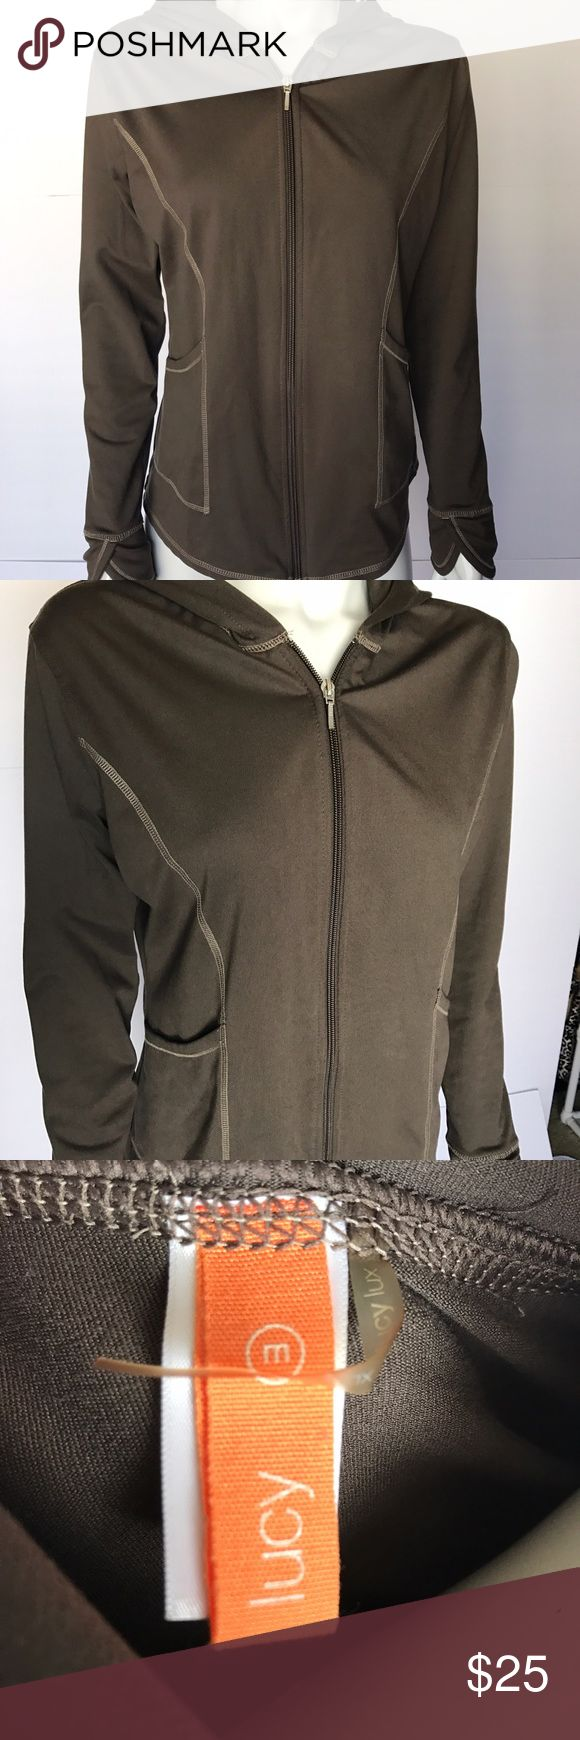 • Lucy • brown zip up sweatshirt Gorgeous athletic sweatshirt is a lovely brown color. Zips down the middle. So, so soft - part of the lucy lux collection. Two pockets on the front. Perfect for a workout or for casual wear. Lucy Tops Sweatshirts & Hoodies